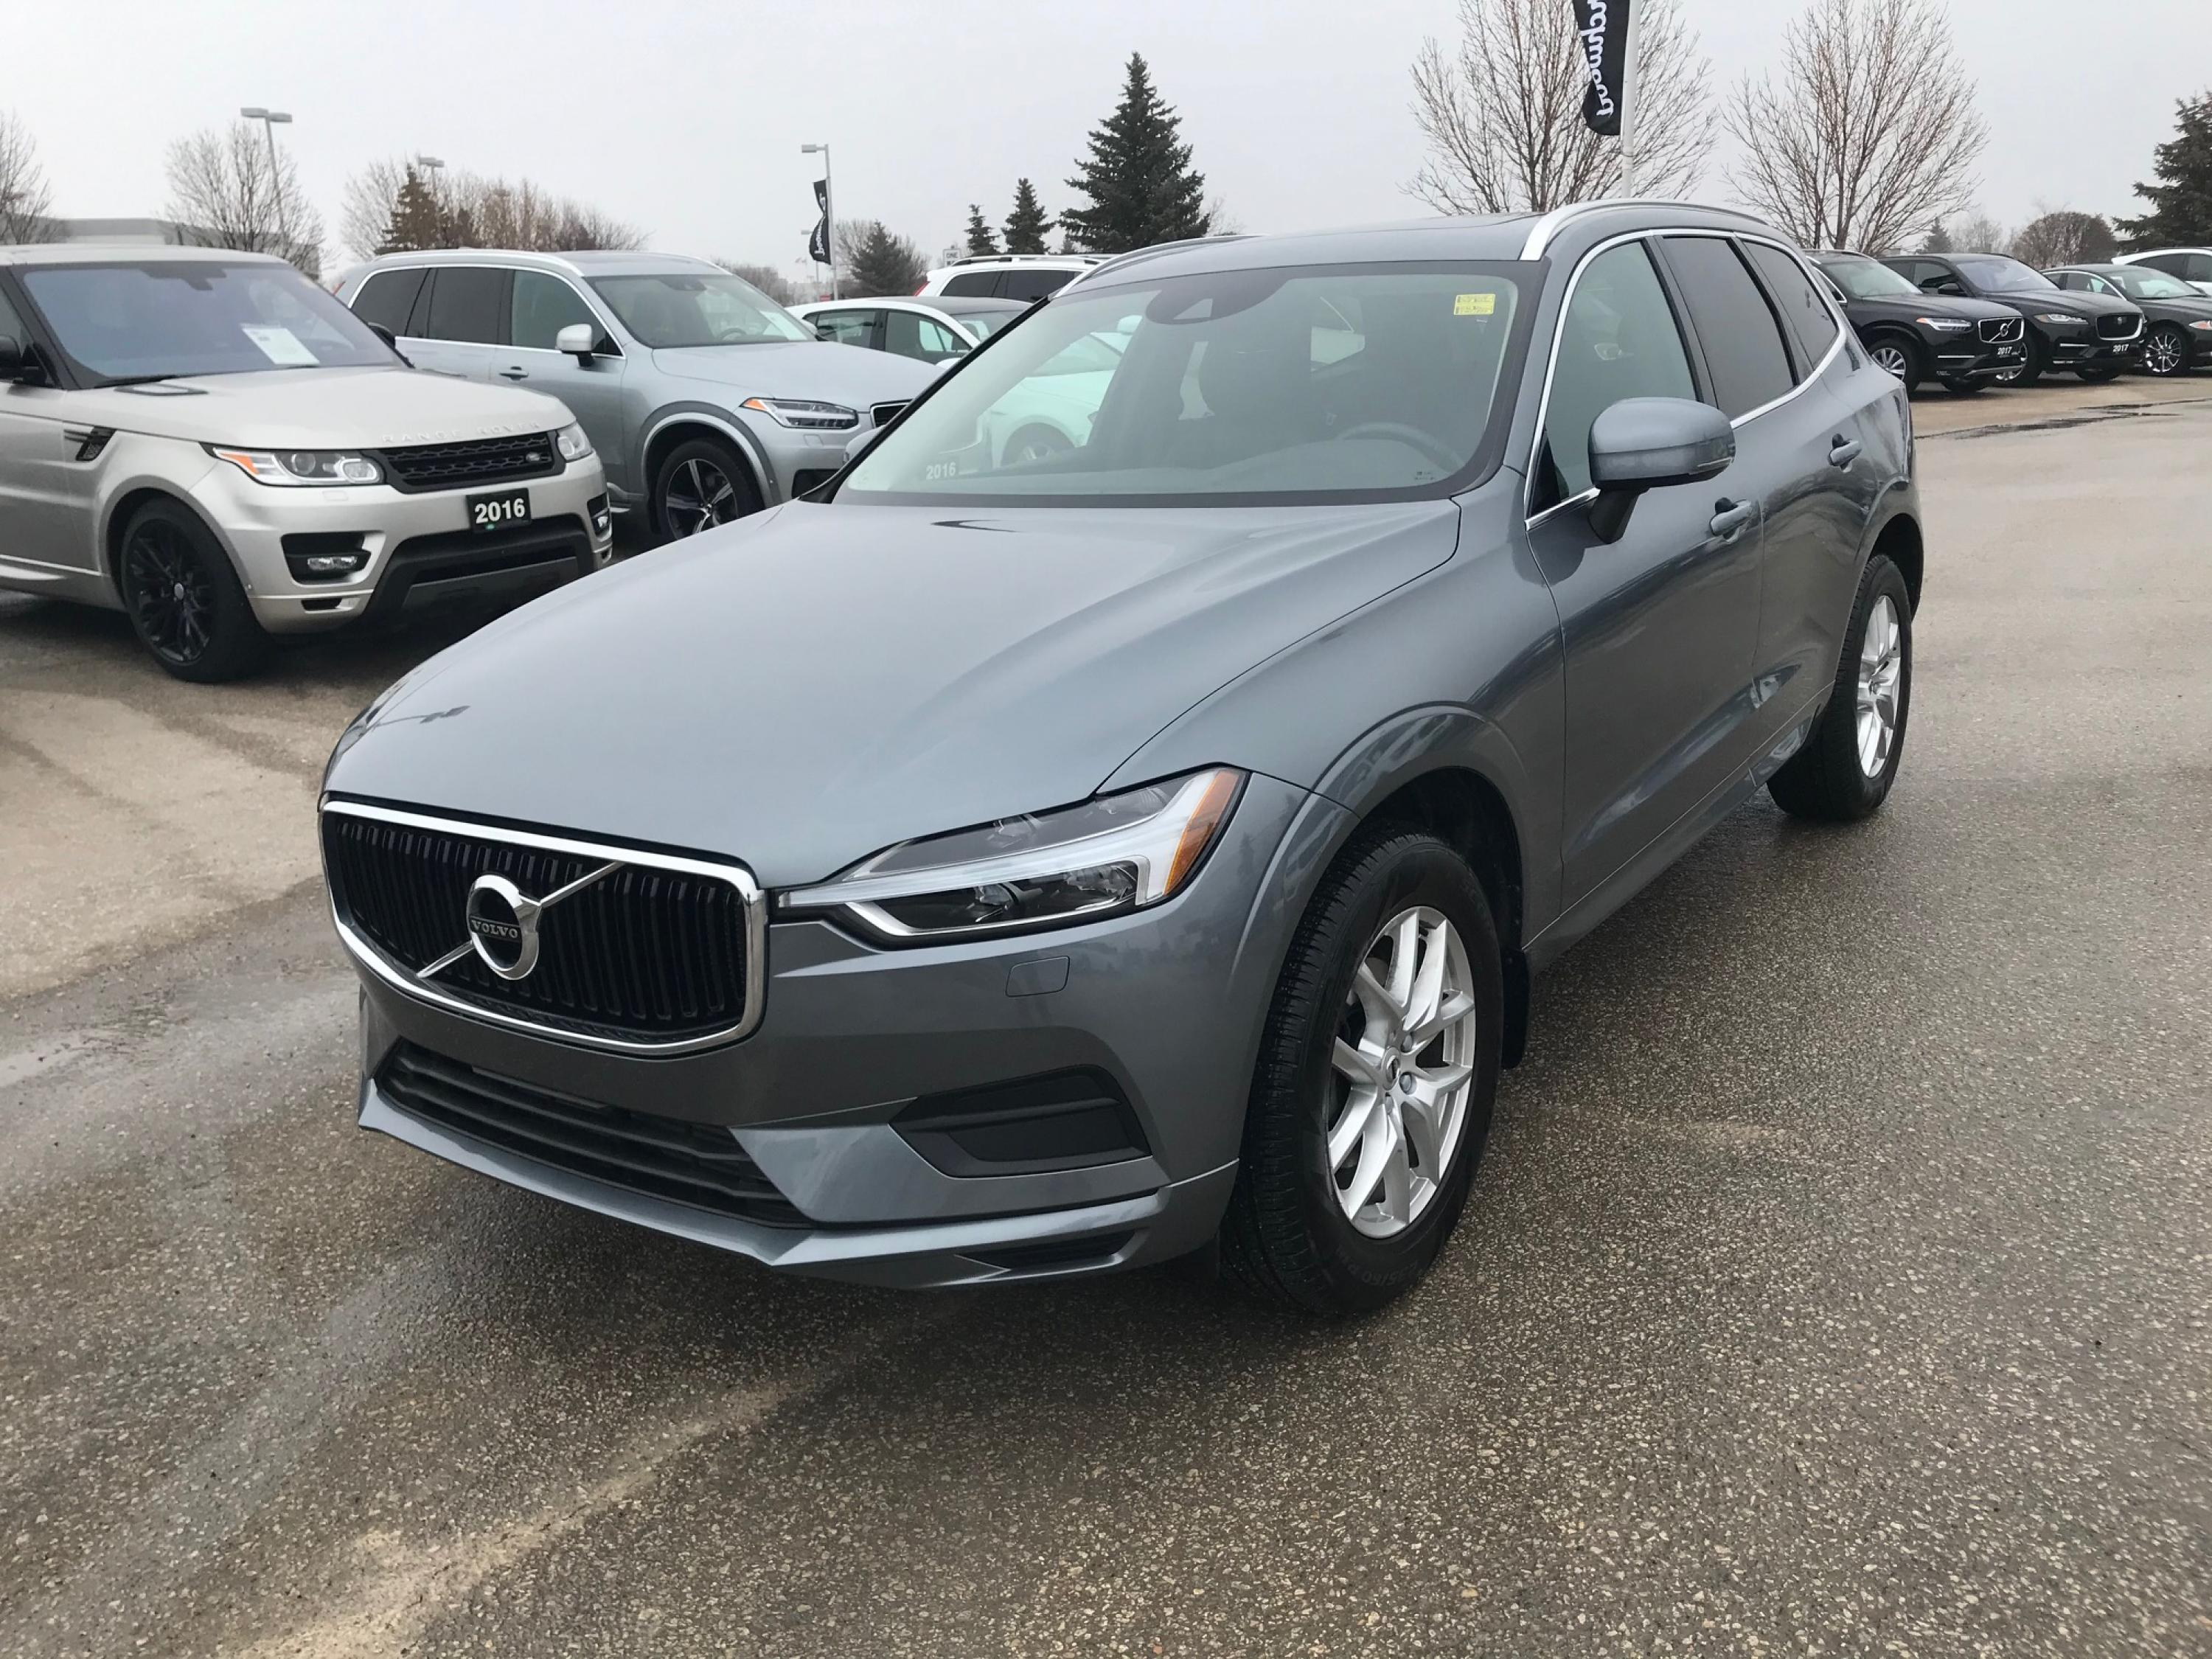 Pre-Owned 2018 Volvo XC60 Momentum April Special: 90 Day Payment Deferral!